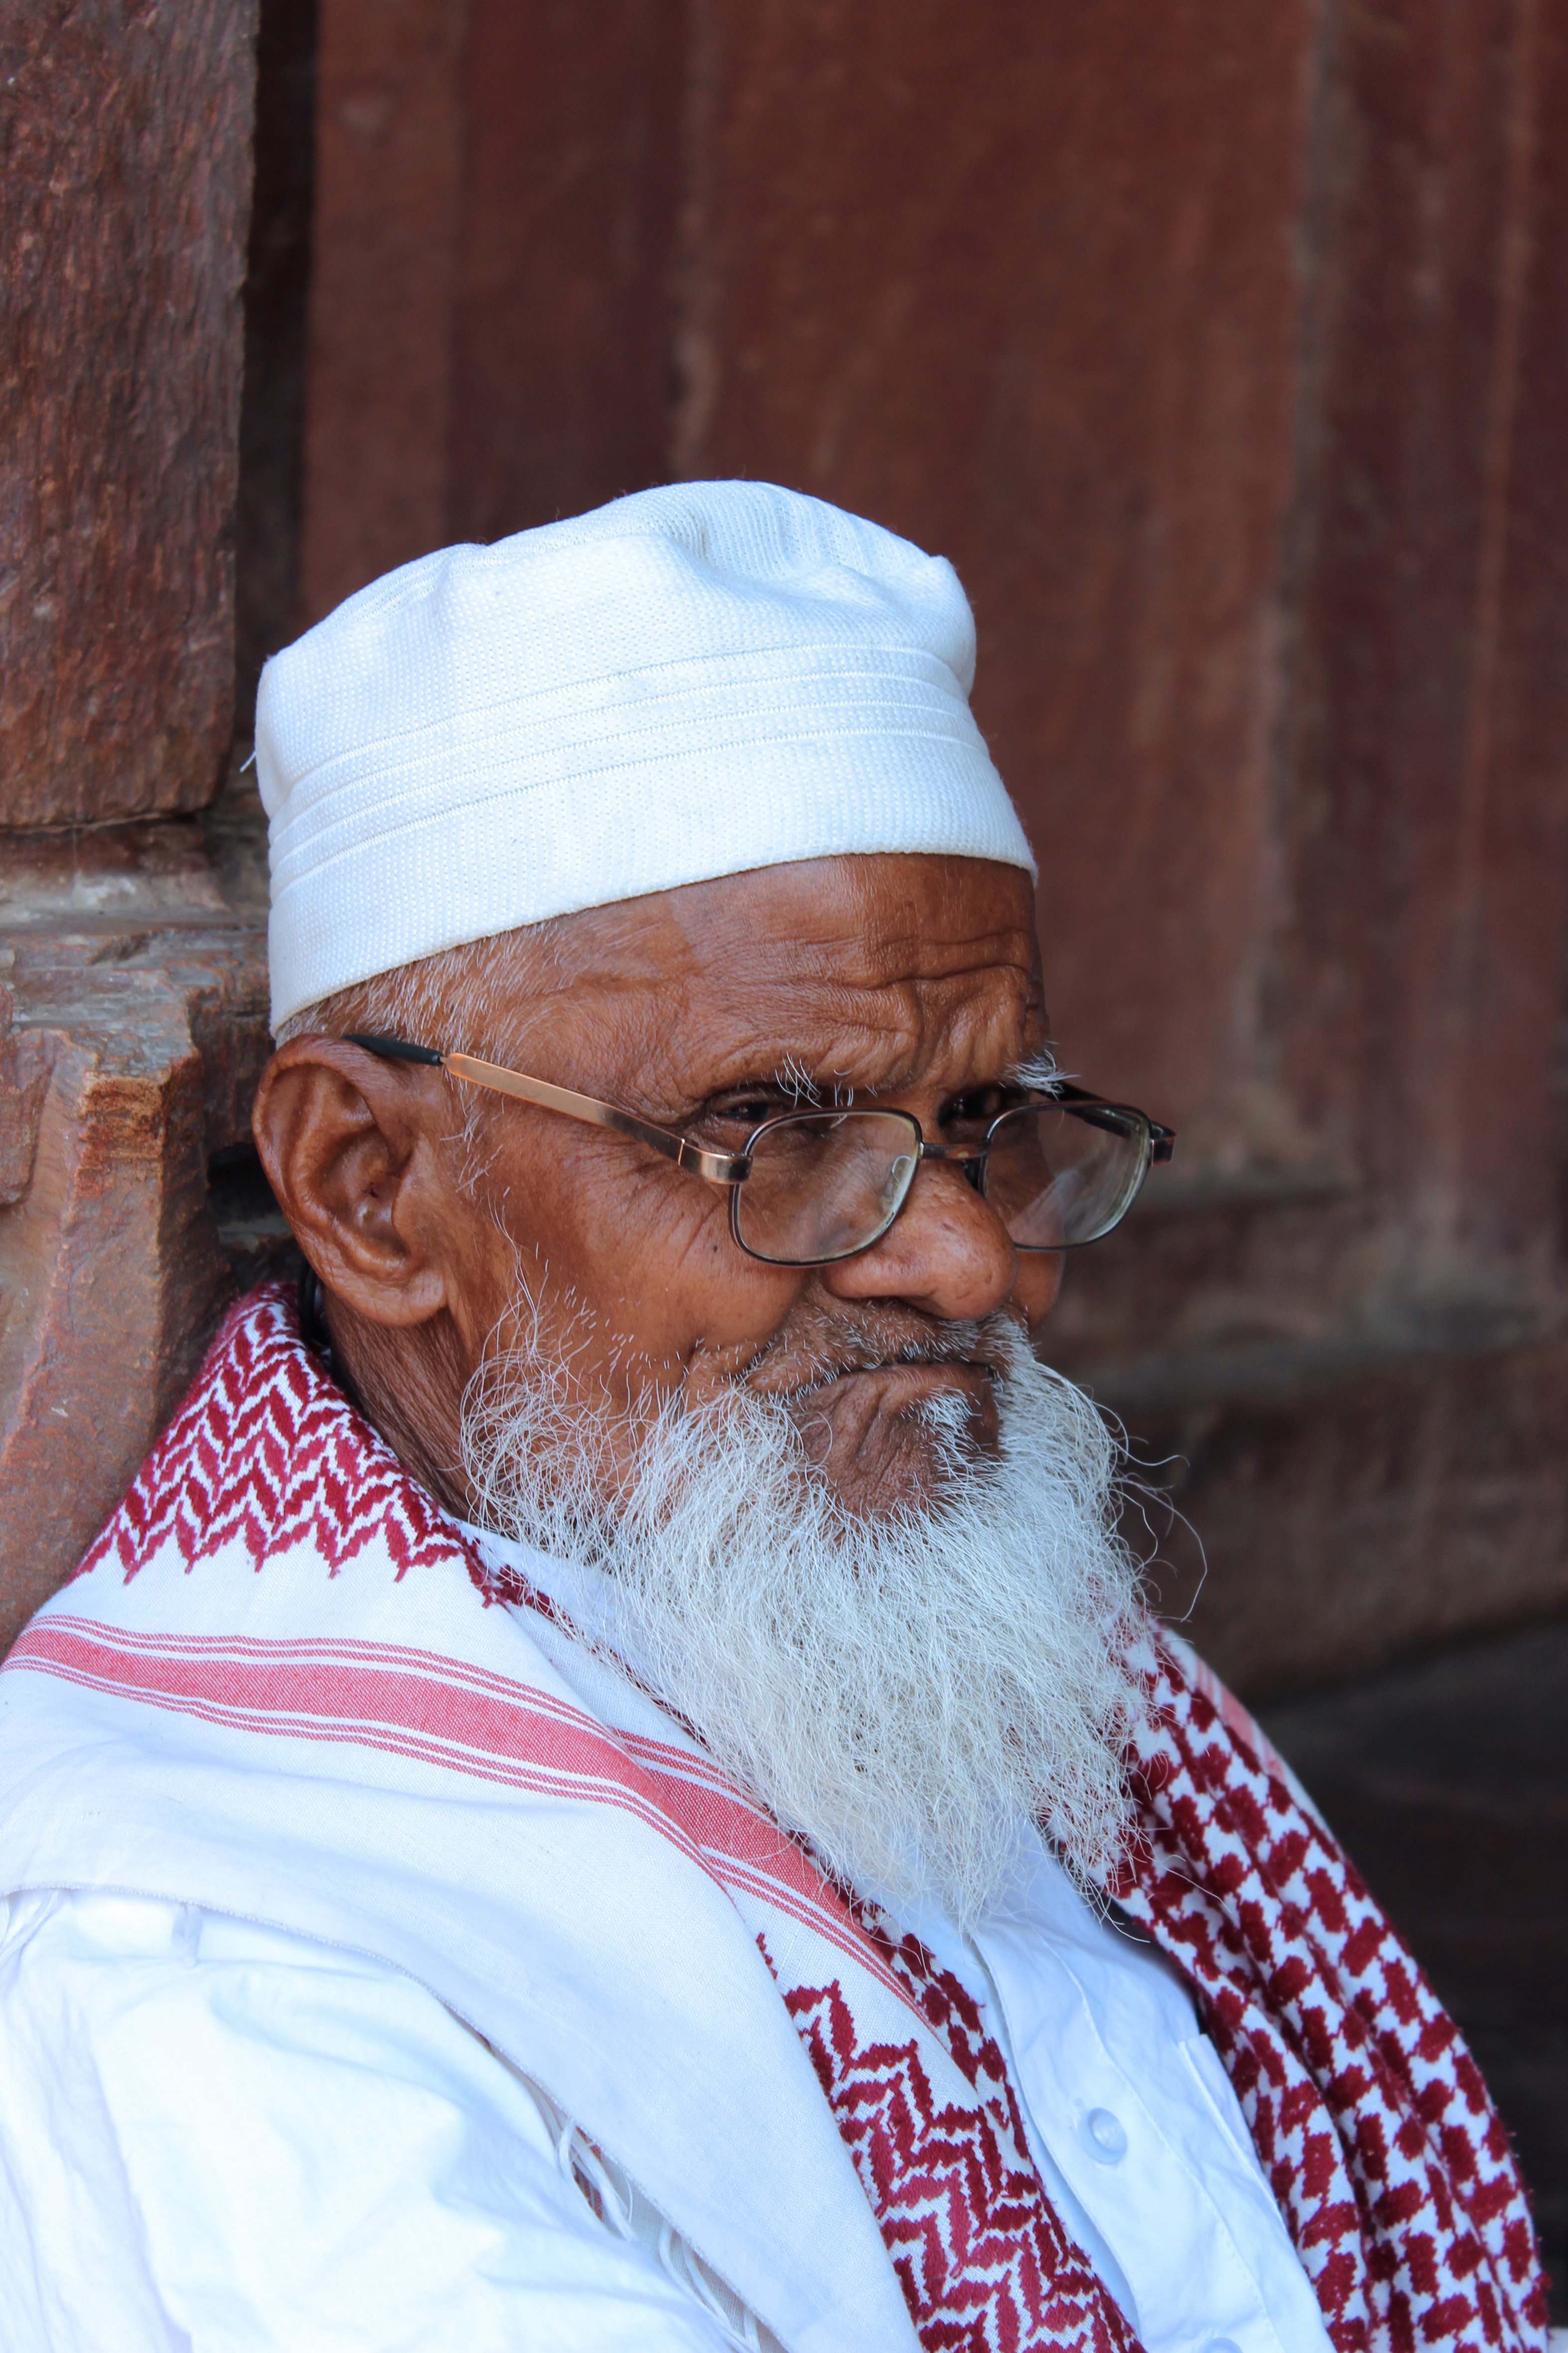 File:Old Muslim man 2 in India.jpg - Wikimedia Commons